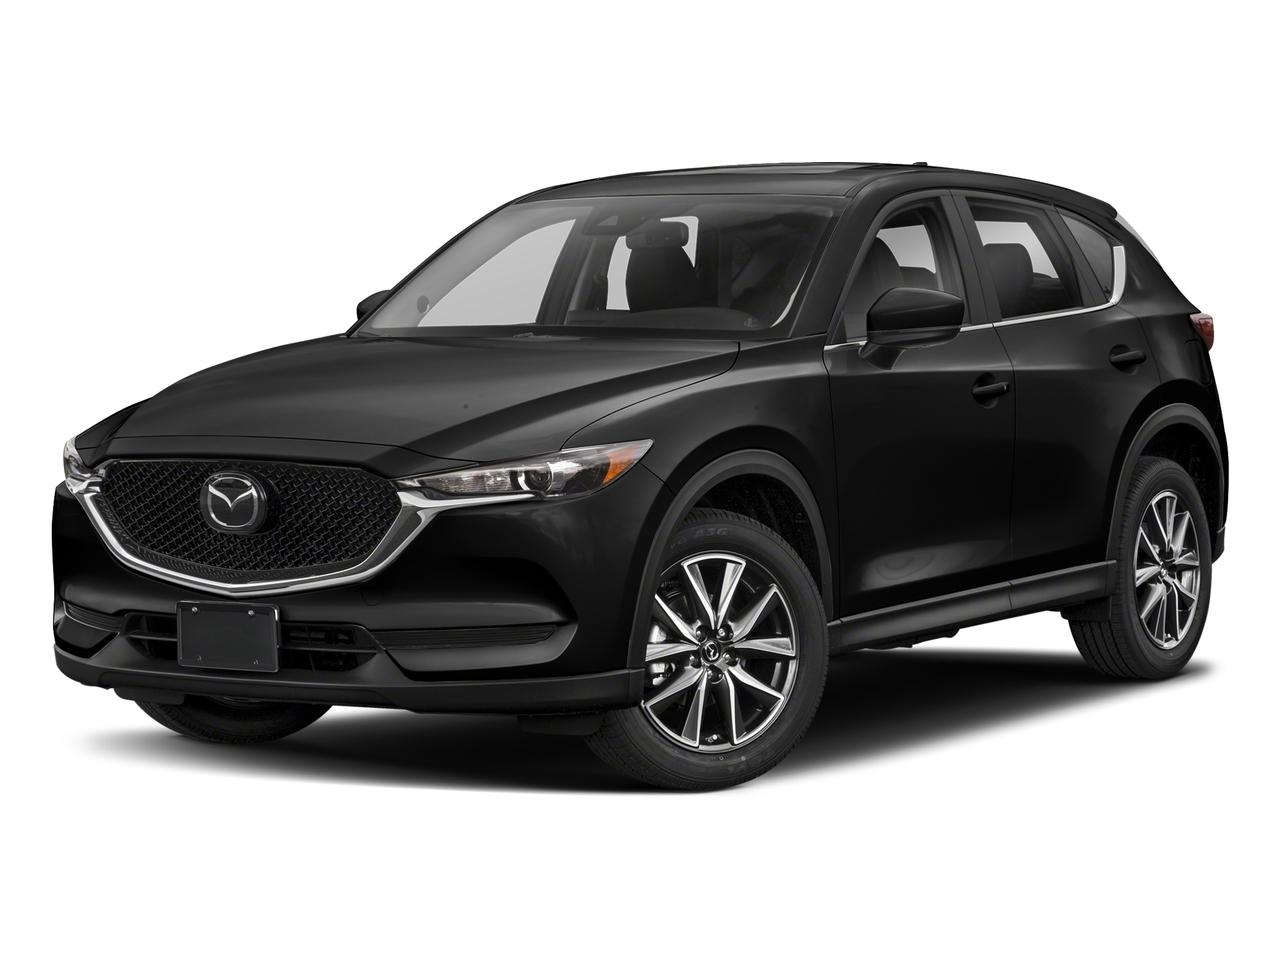 2018 Mazda CX-5 Vehicle Photo in Champlain, NY 12919